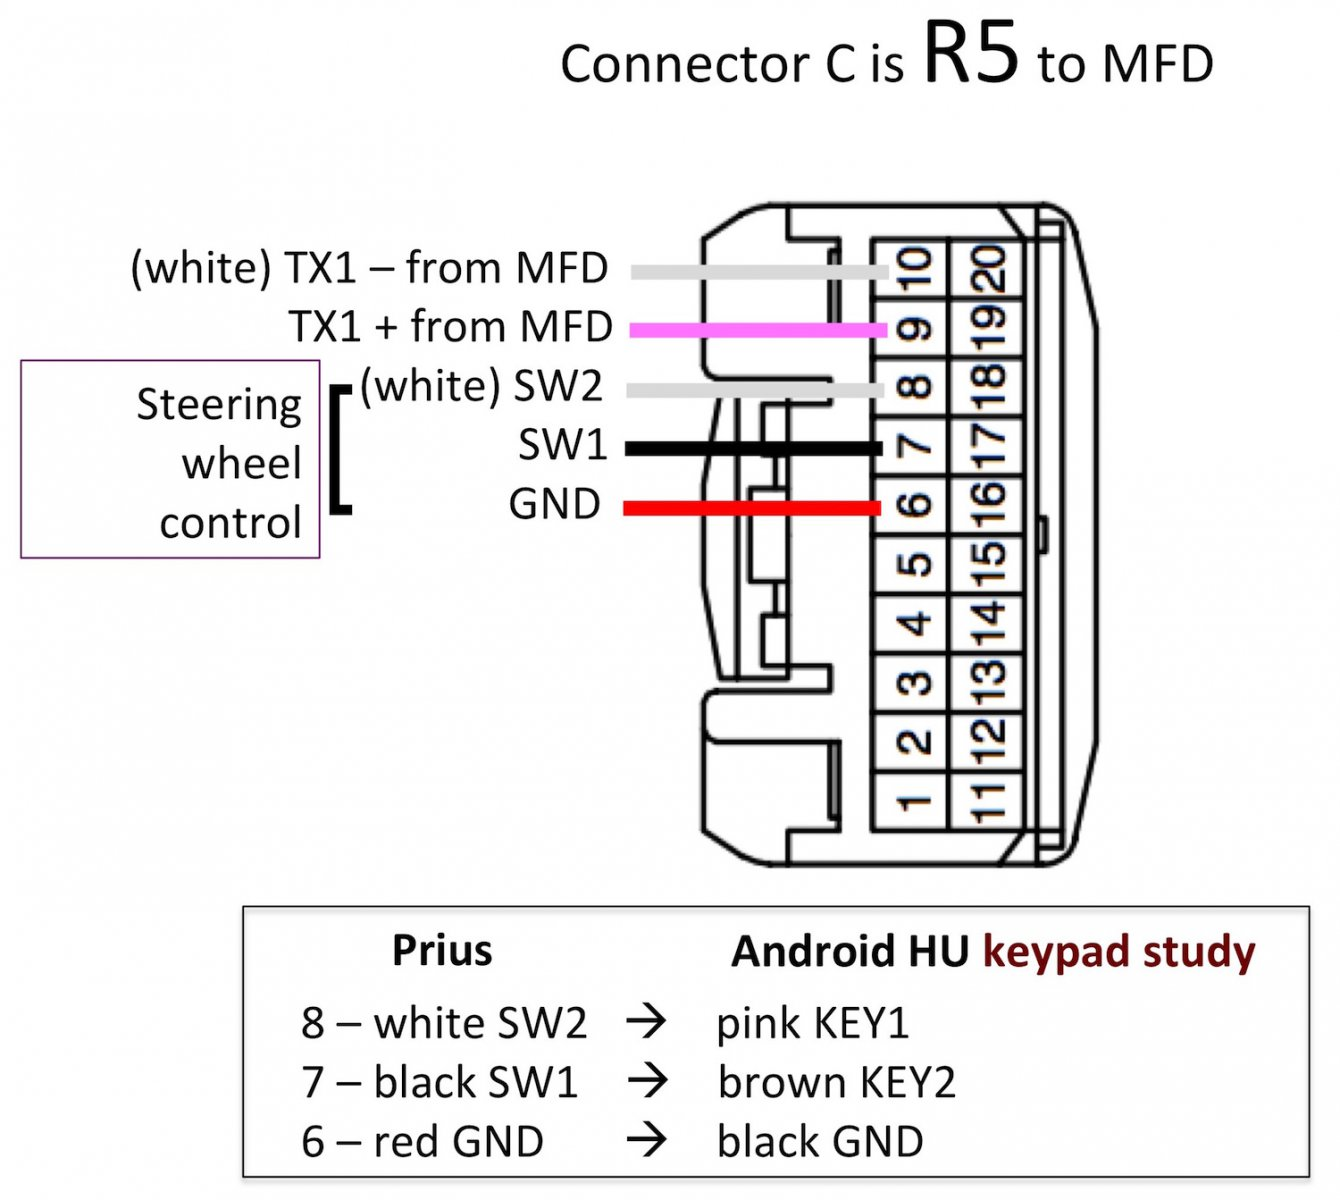 Steering Wheel Control With Android Hu Without Metra Aswc Interface on car stereo amplifier wiring diagram